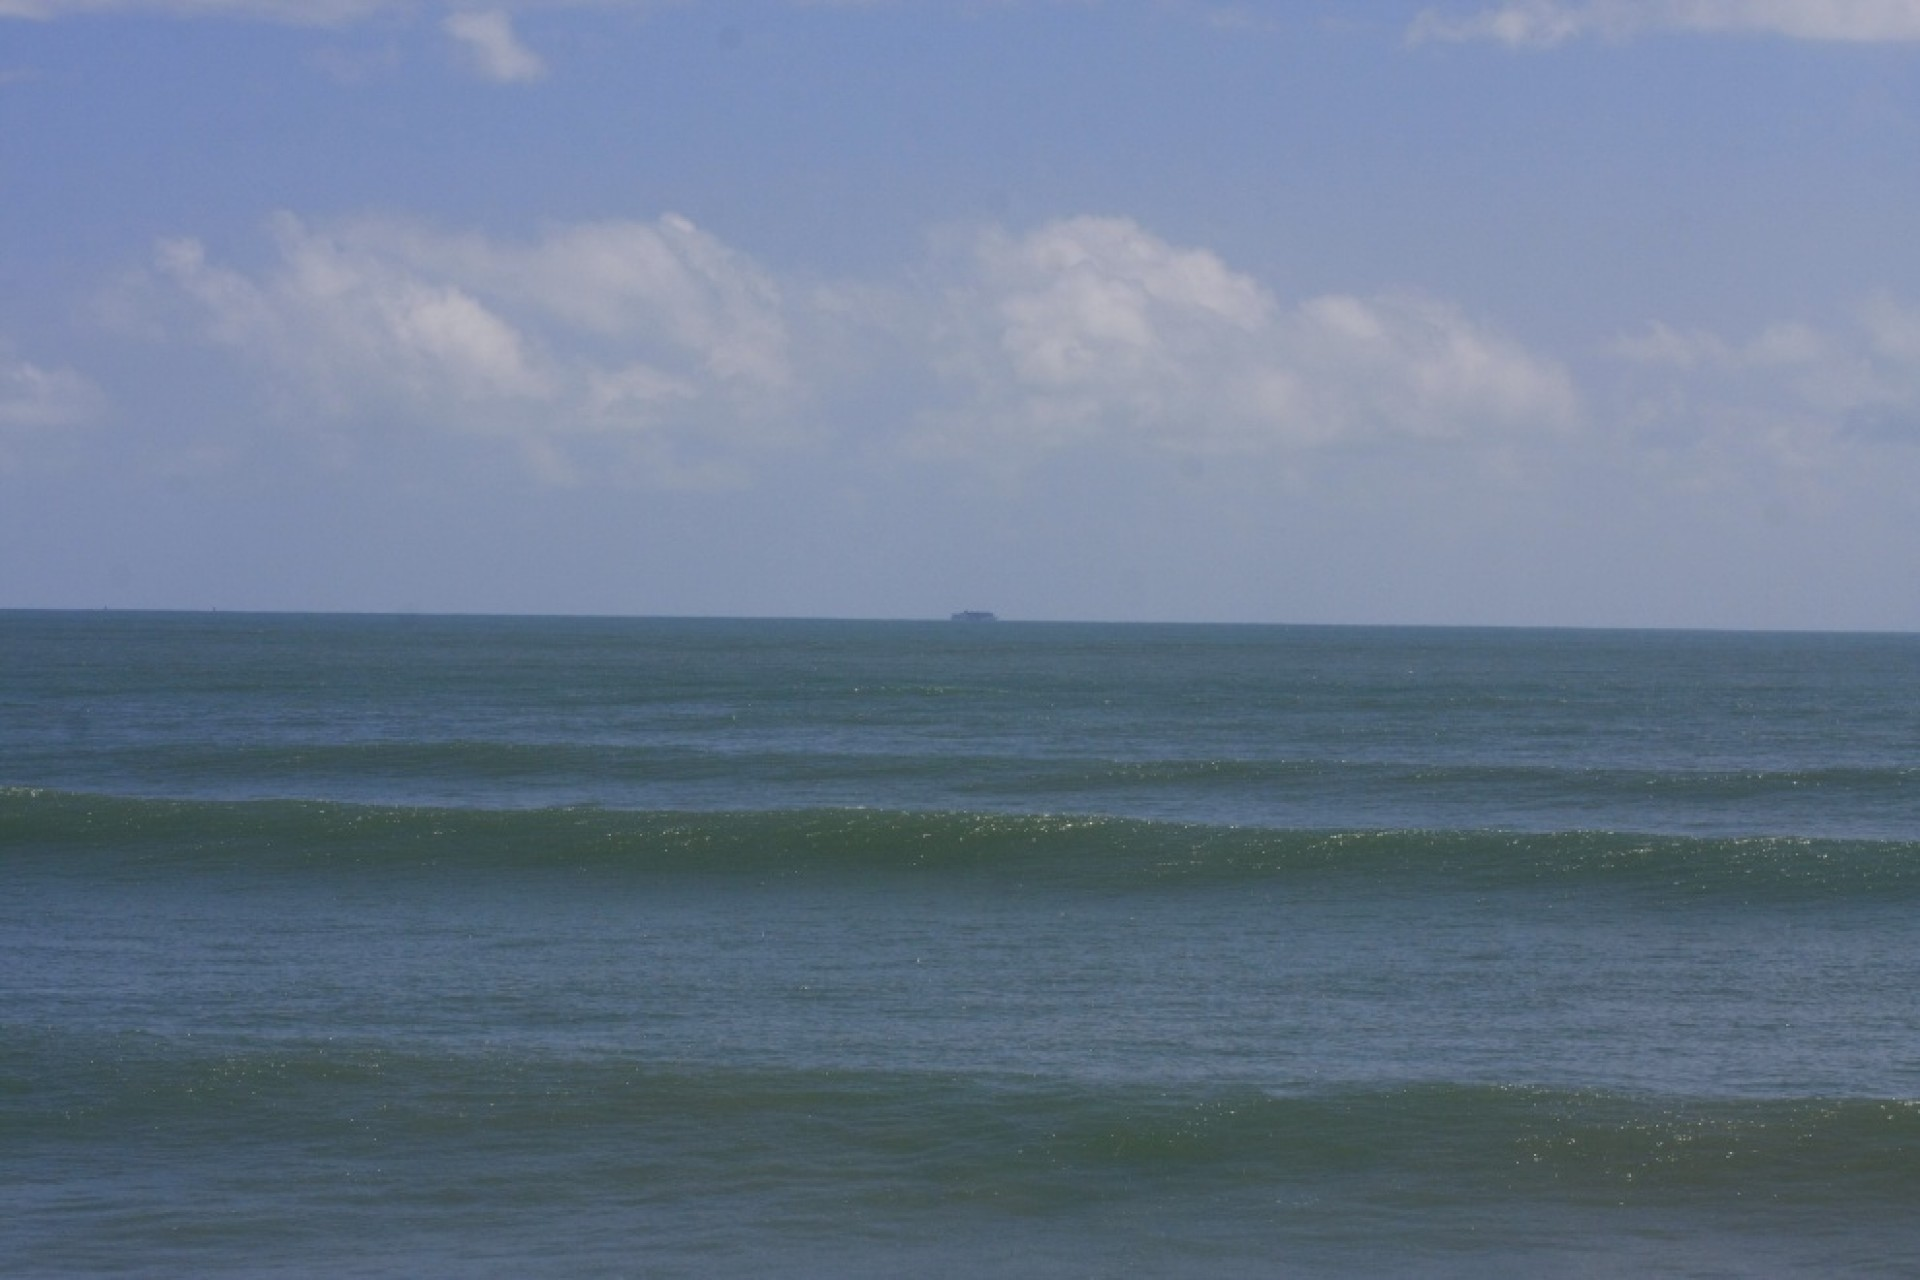 QuonnieRI's photo of Cocoa Beach